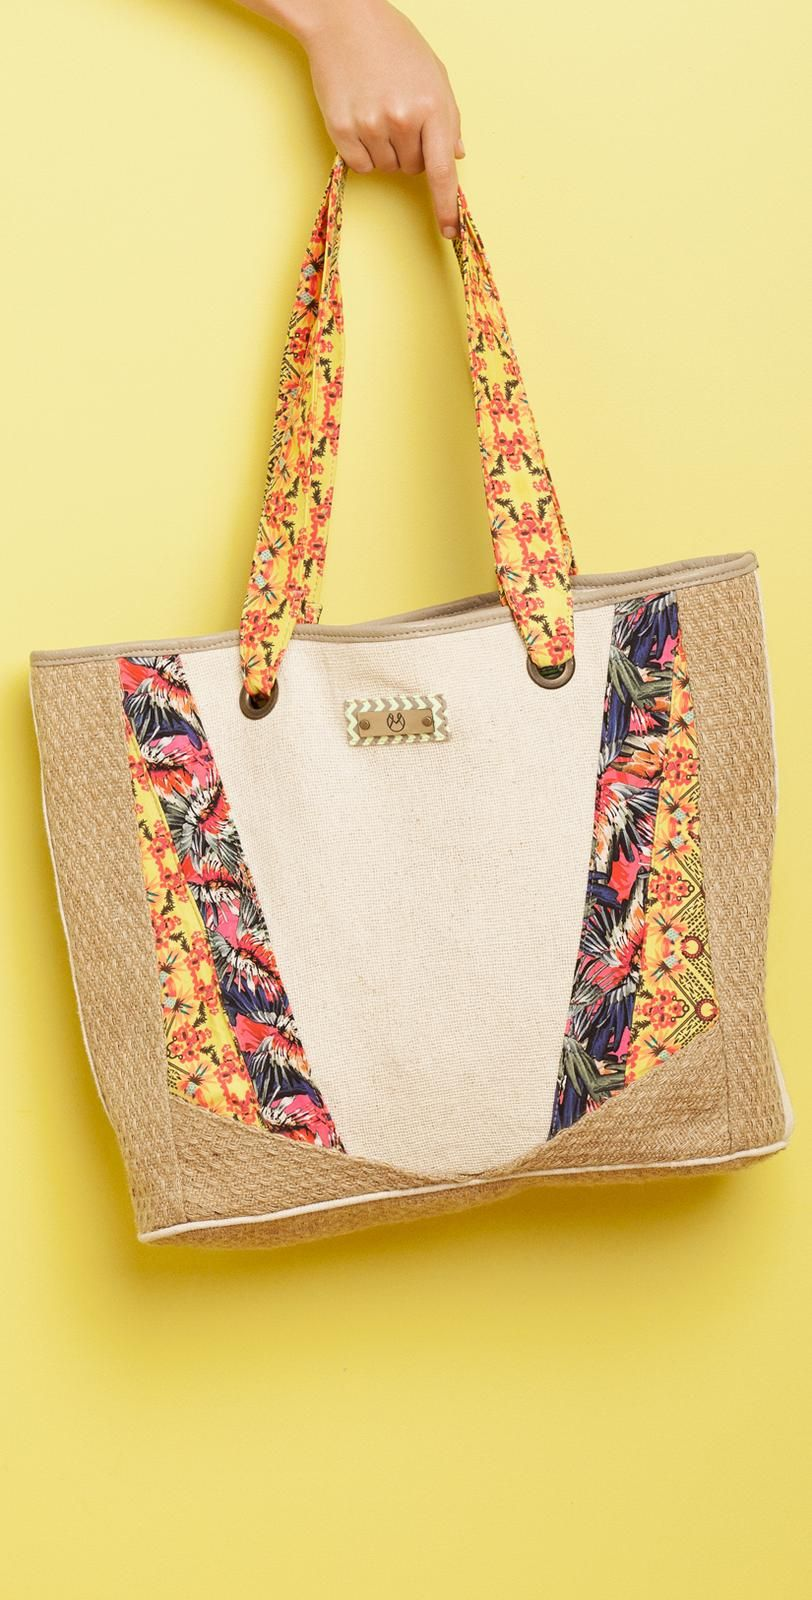 Maaji 2014 Beach Bag | •like• | Pinterest | Borse, Spiagge e ...